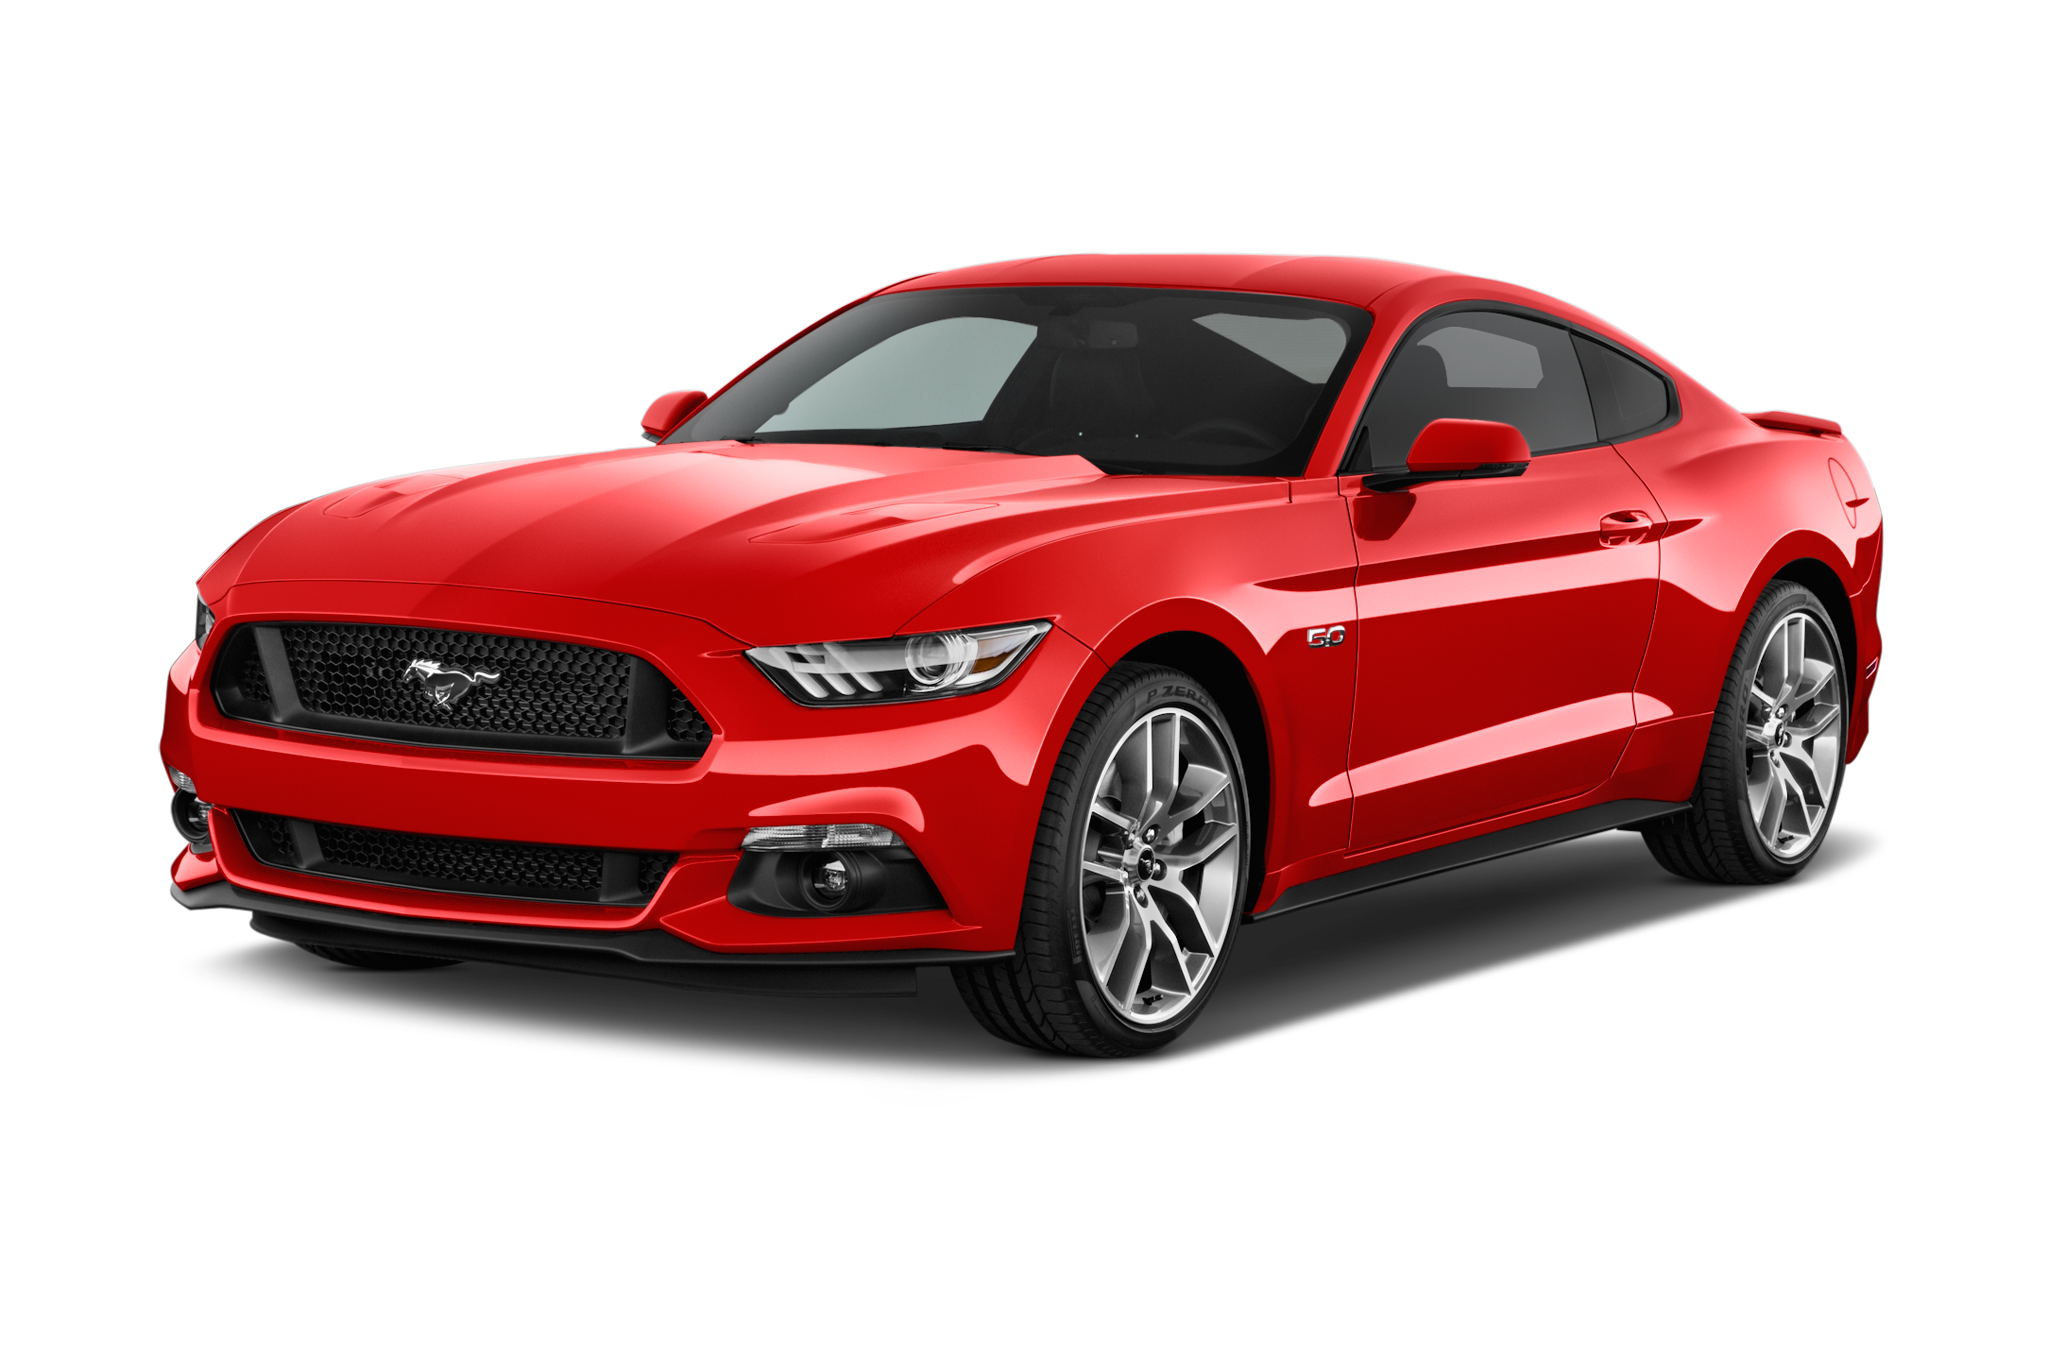 Ford mustang gt coupe premium 2015 prices specs